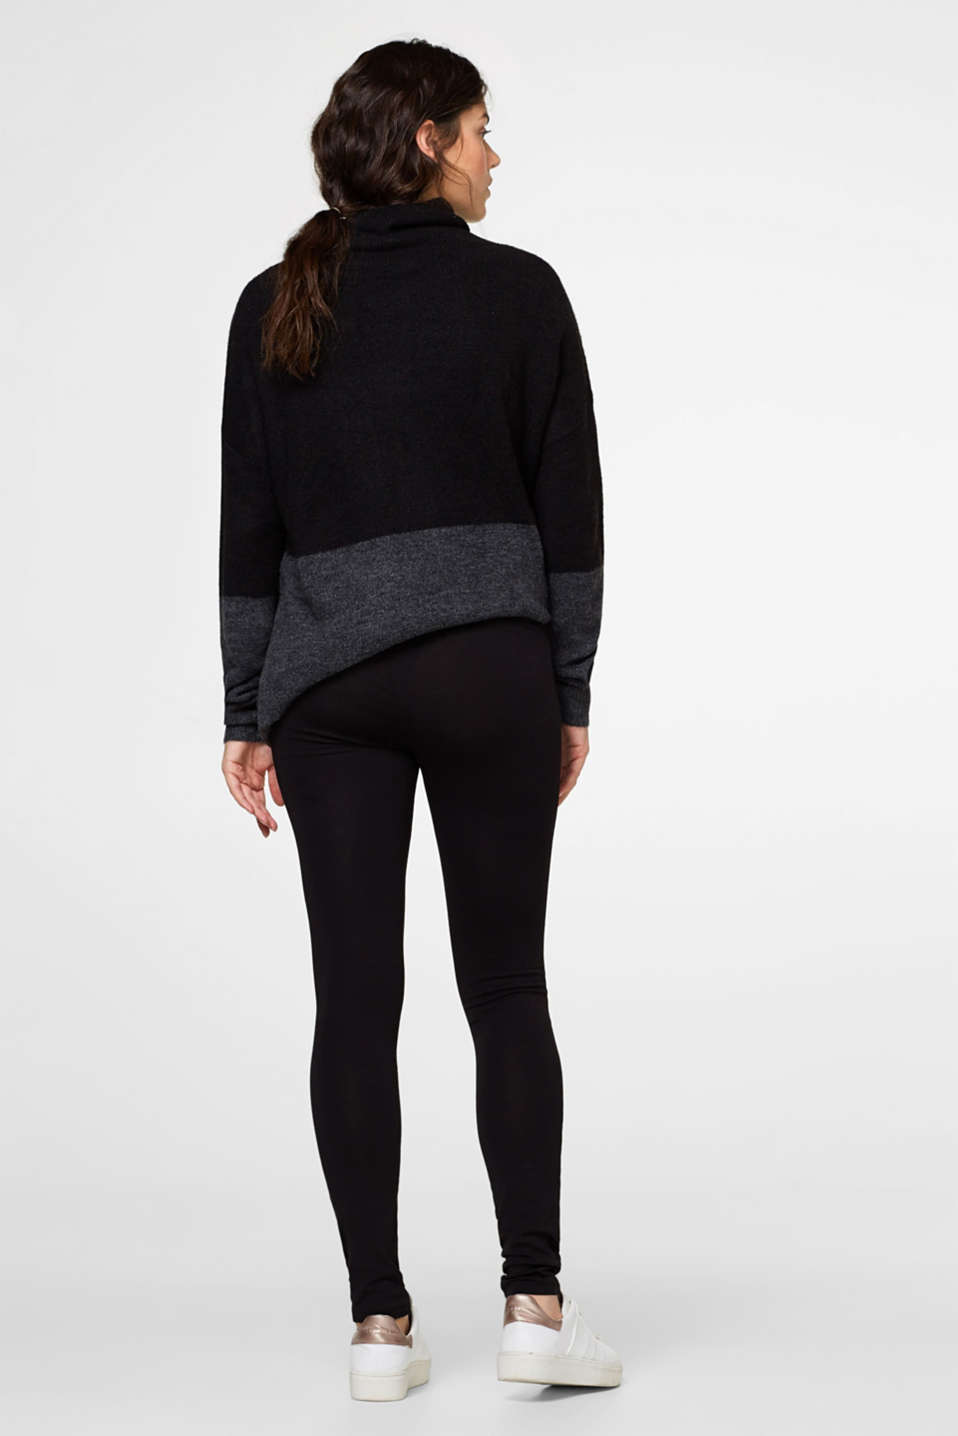 Esprit - Stretch leggings + above-bump waistband